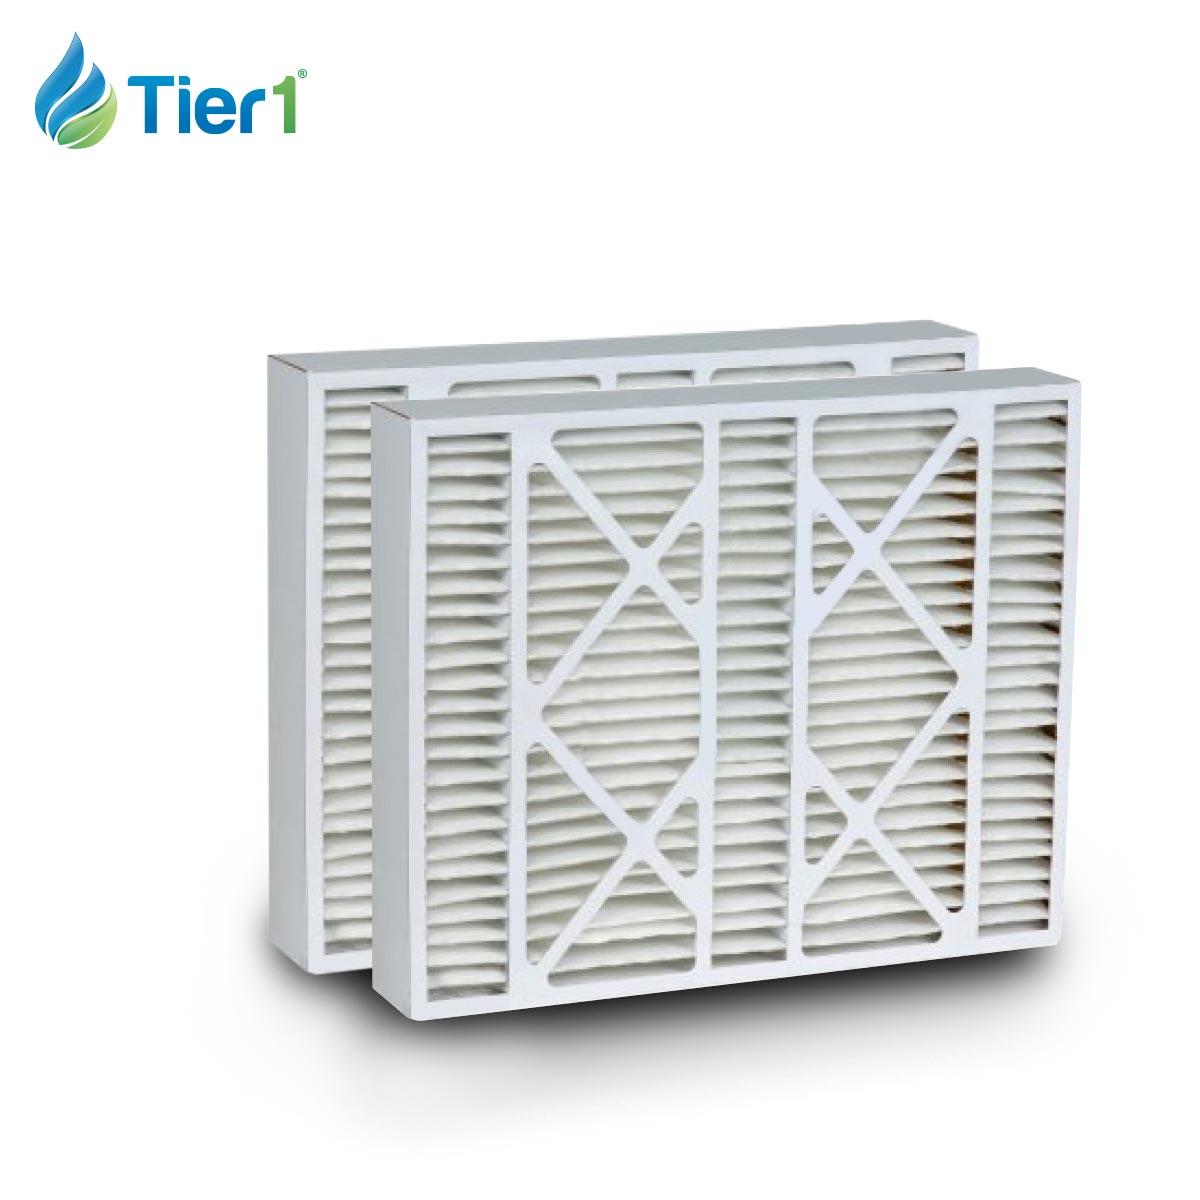 Tier1 brand replacement for Electro Air - 20 x 21 x 5 - MERV 11 (2-Pack) TIER1-DPFI20X21X5M11DEA